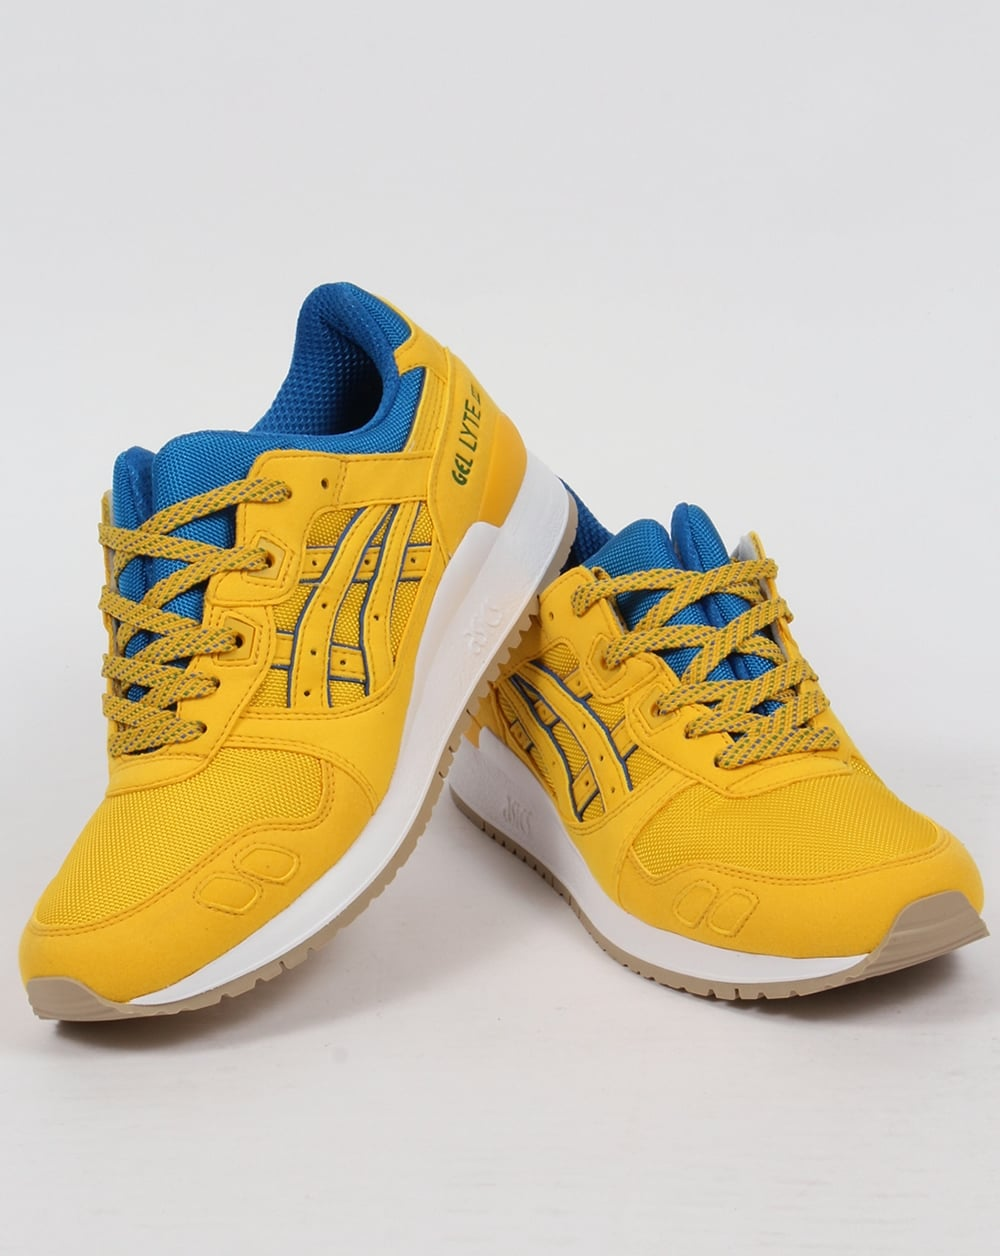 Asics Gel Lyte III Baskets Tai chi 13700 jaune , , 3 3 , chaussures , coureurs , baskets 36e6b63 - acornarboricultural.info